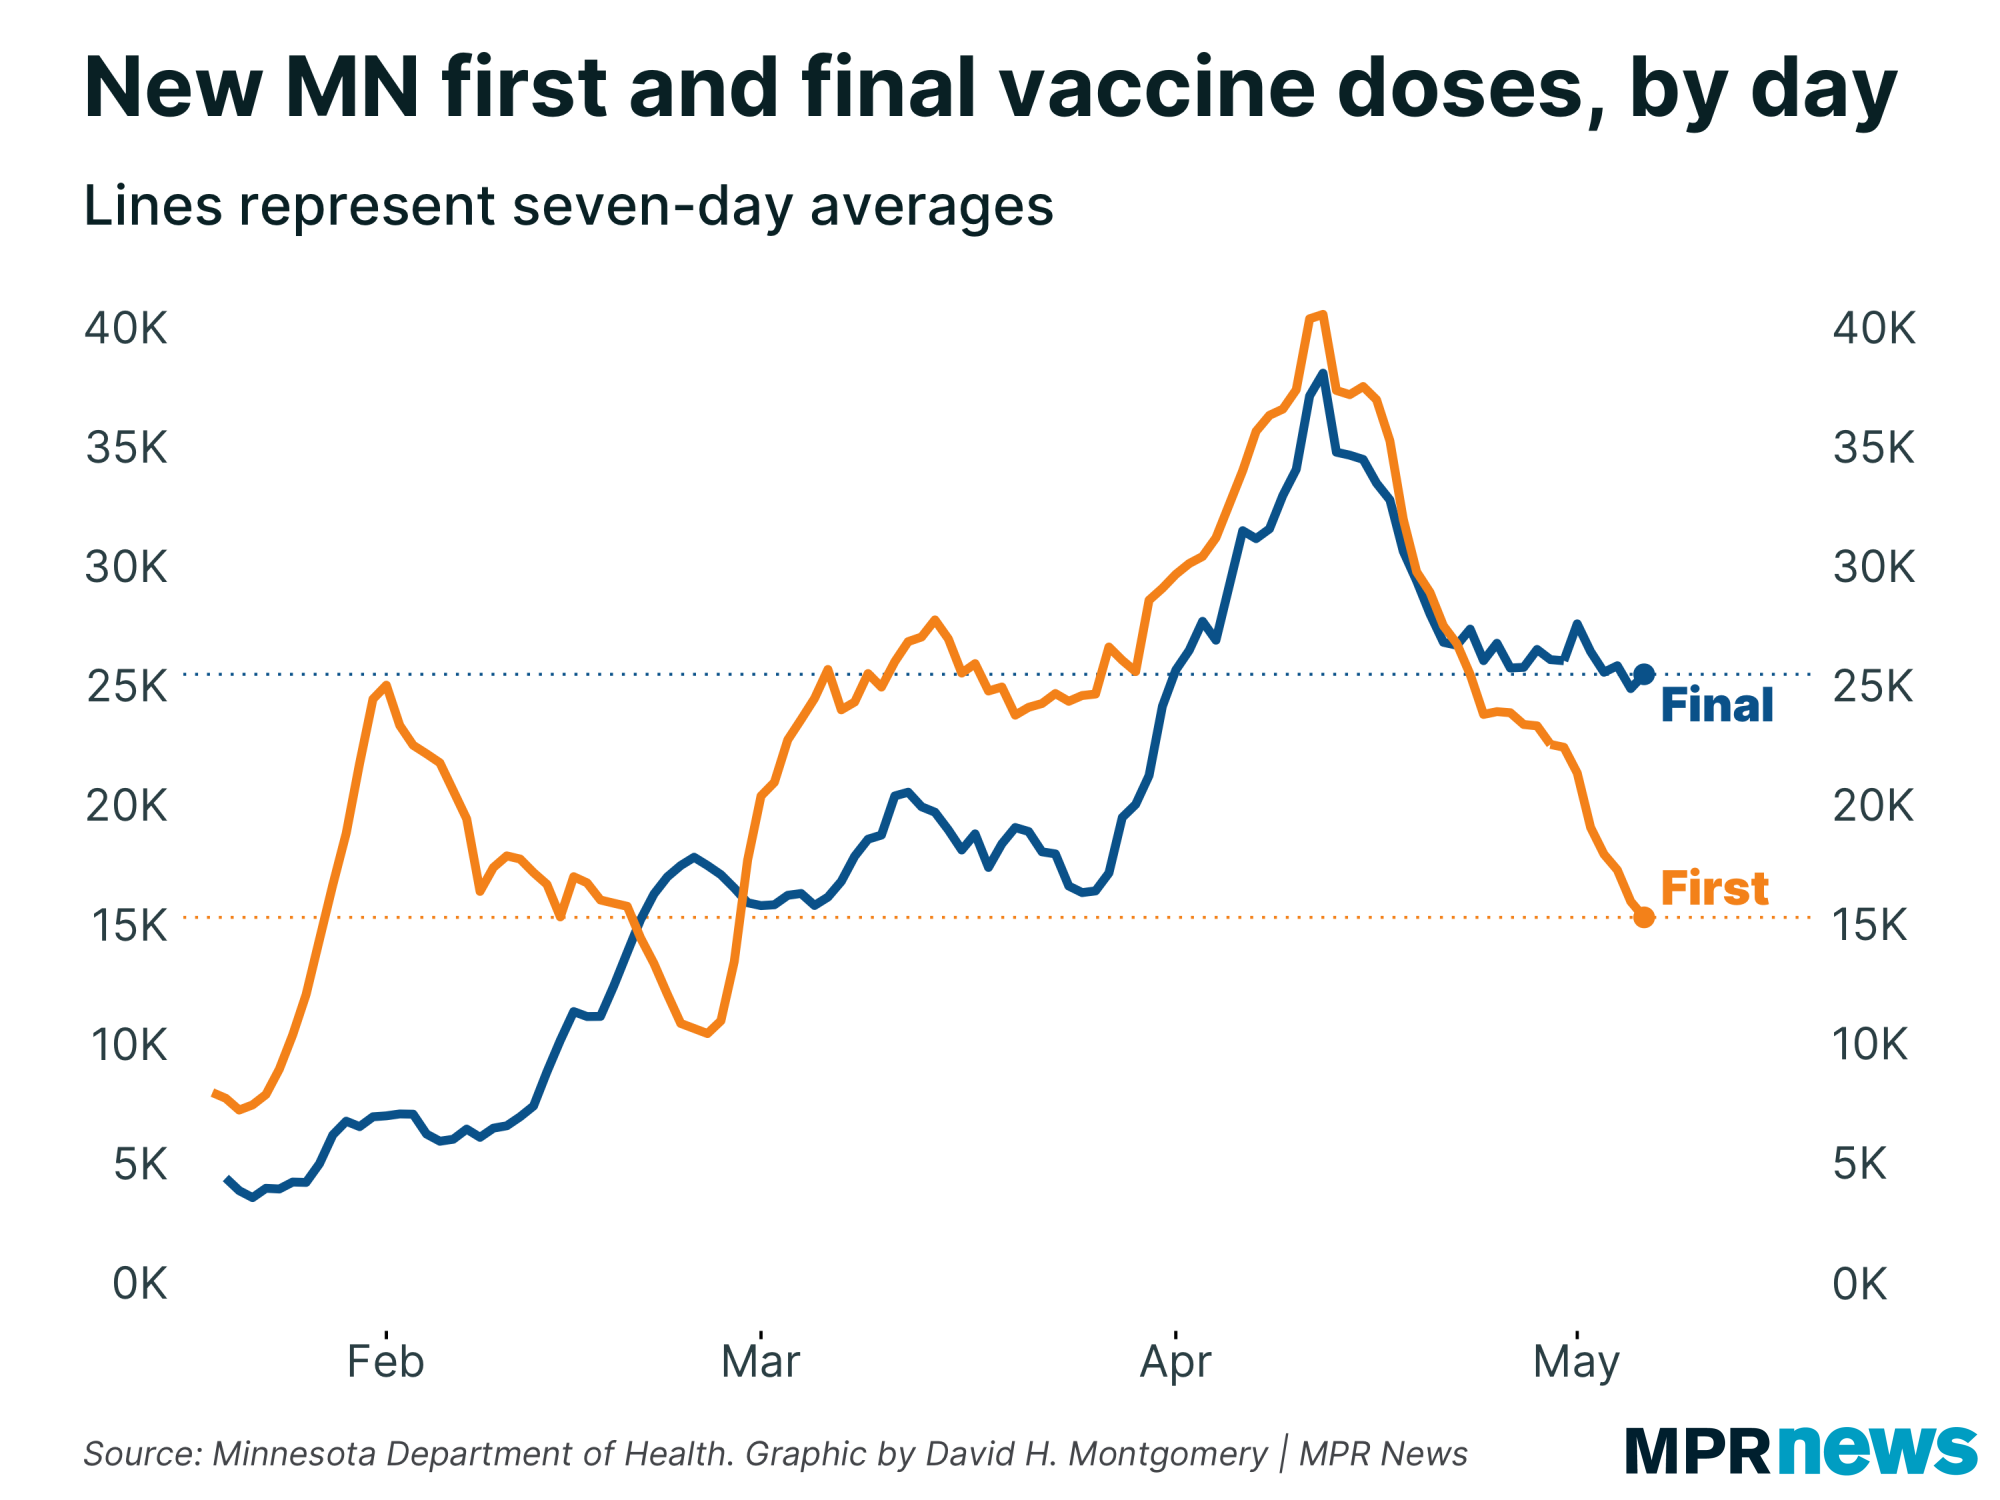 New first and final vaccine doses in Minnesota